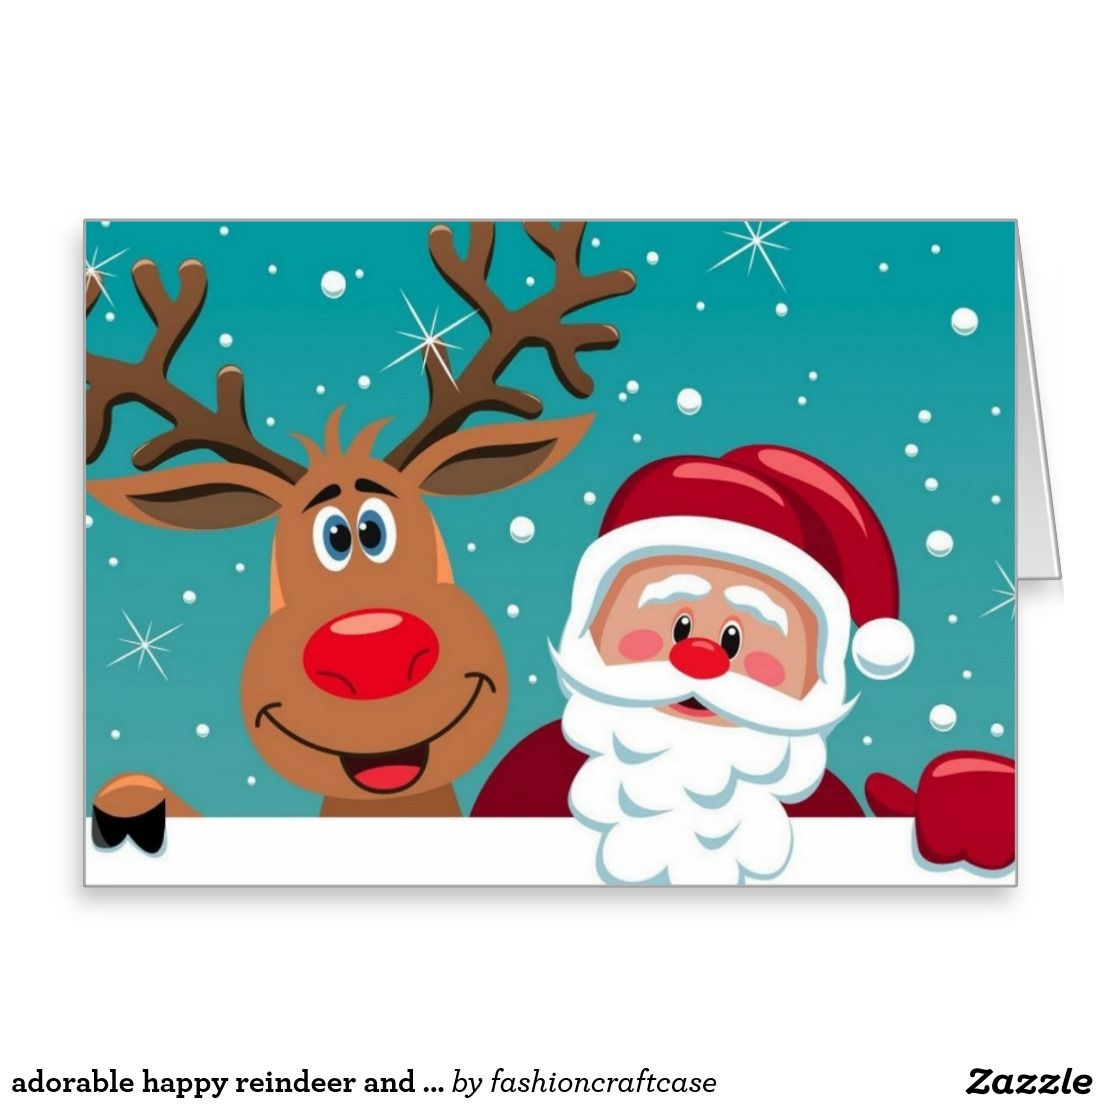 Adorable Happy Reindeer And Santa Claus Holiday Card